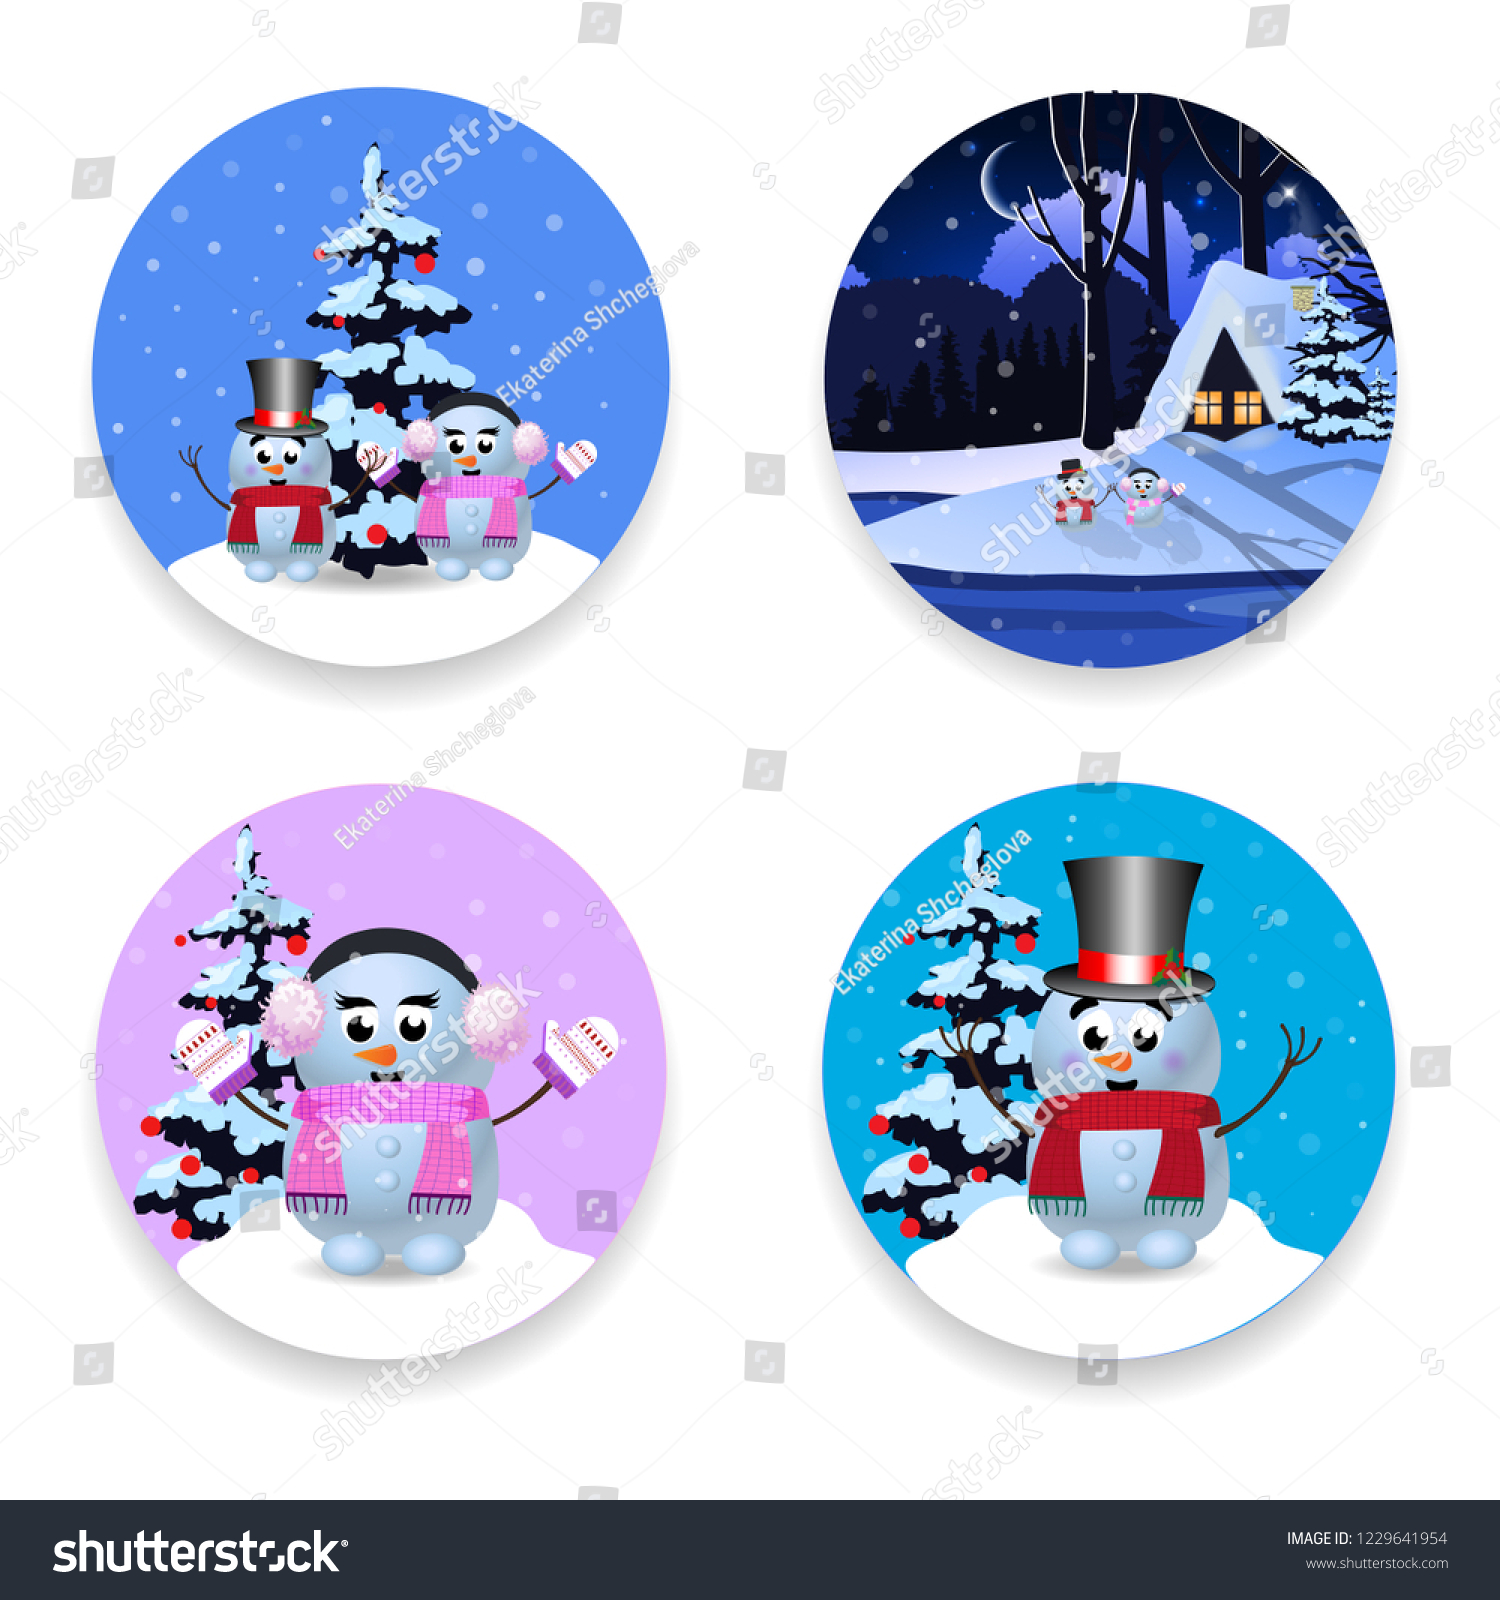 christmas new year round signs set with cute cartoon characters snowman winter house and